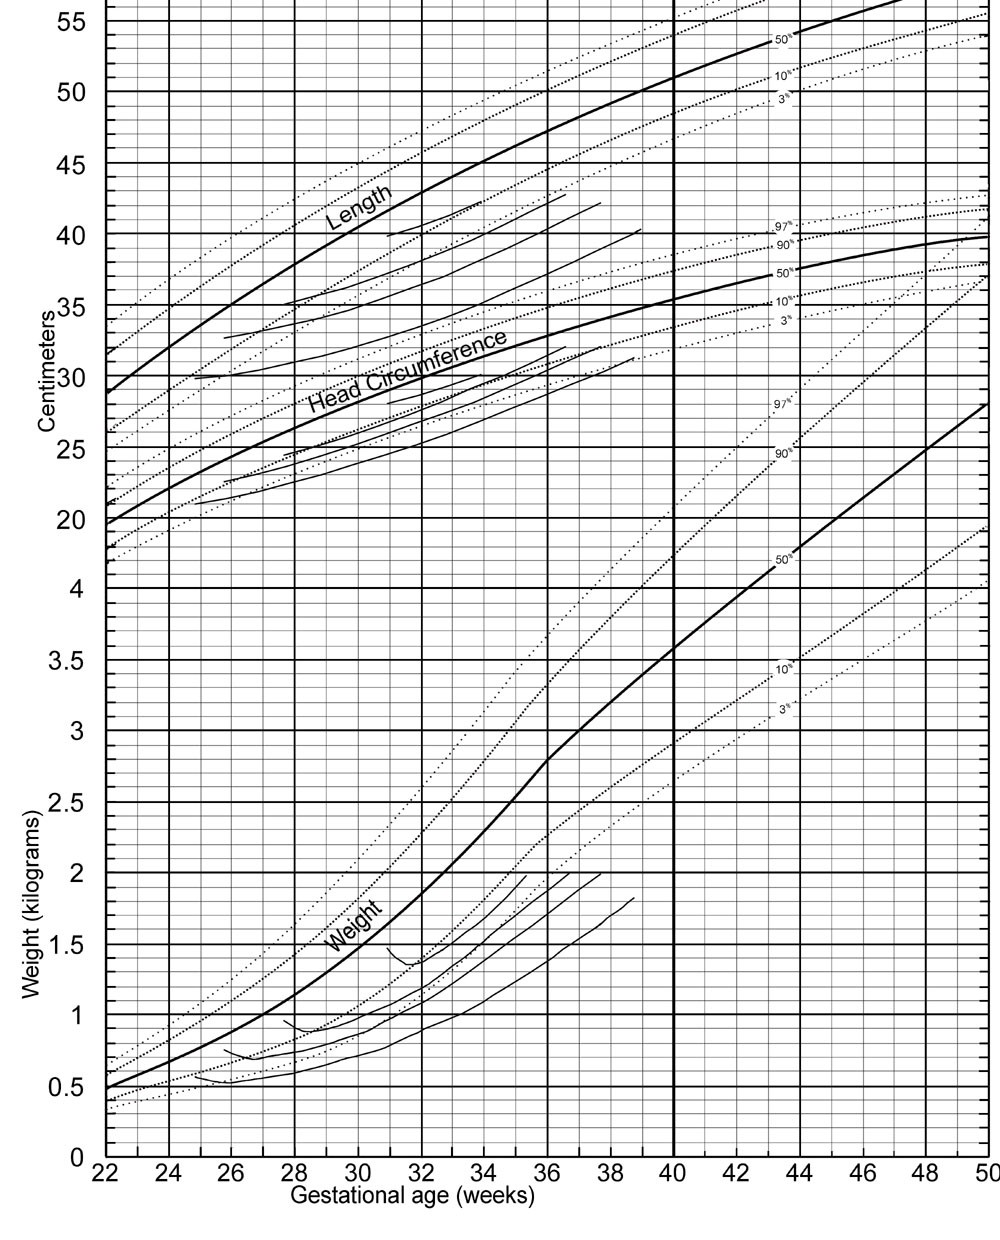 A new growth chart for preterm babies babson and benda s chart